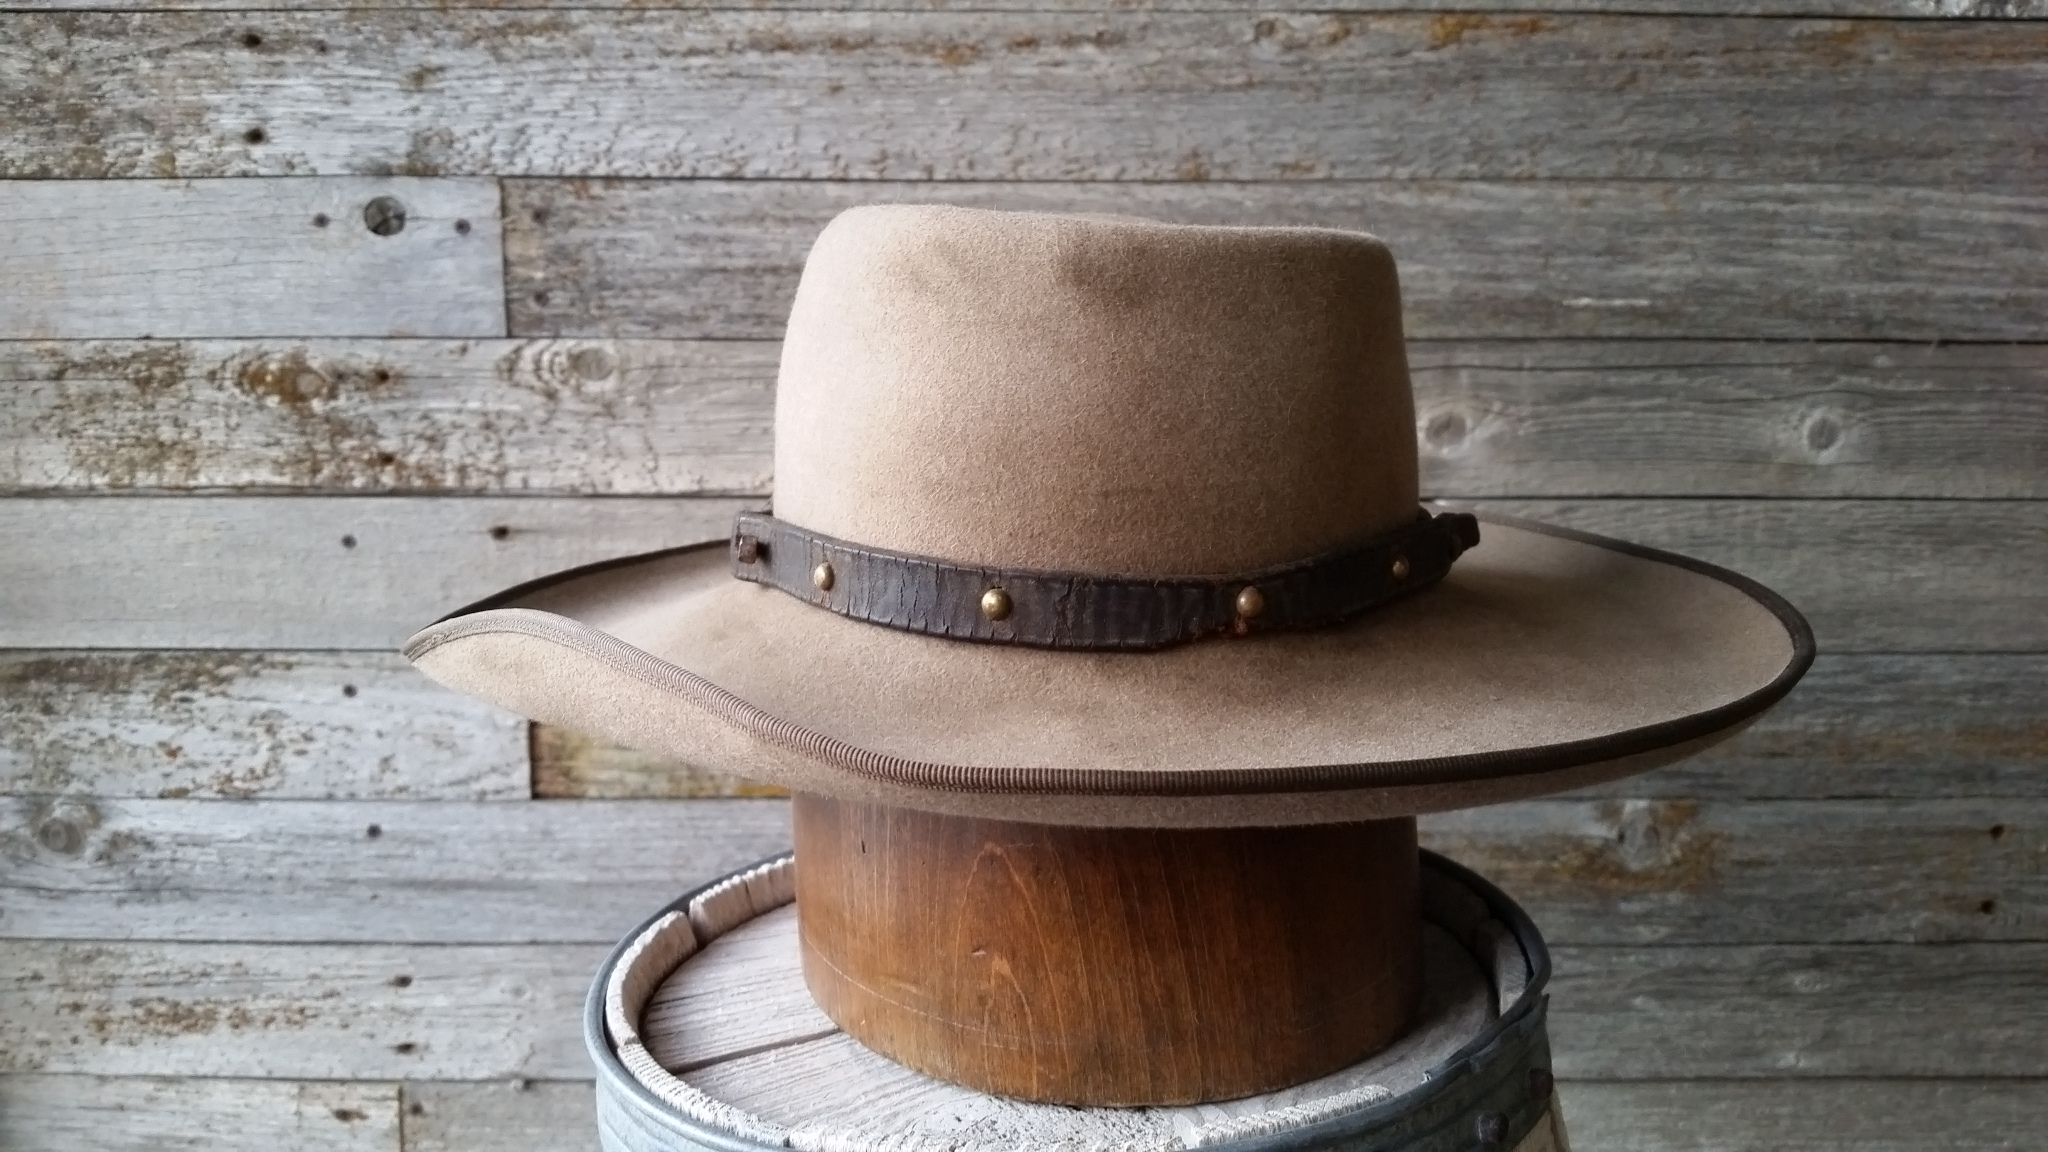 If you are looking for old vintage style cowboy hats that look like the  sort of hat that cowboys wore in the 1800s. Then look no further than  Staker Custom ... 6e7ce3840a1